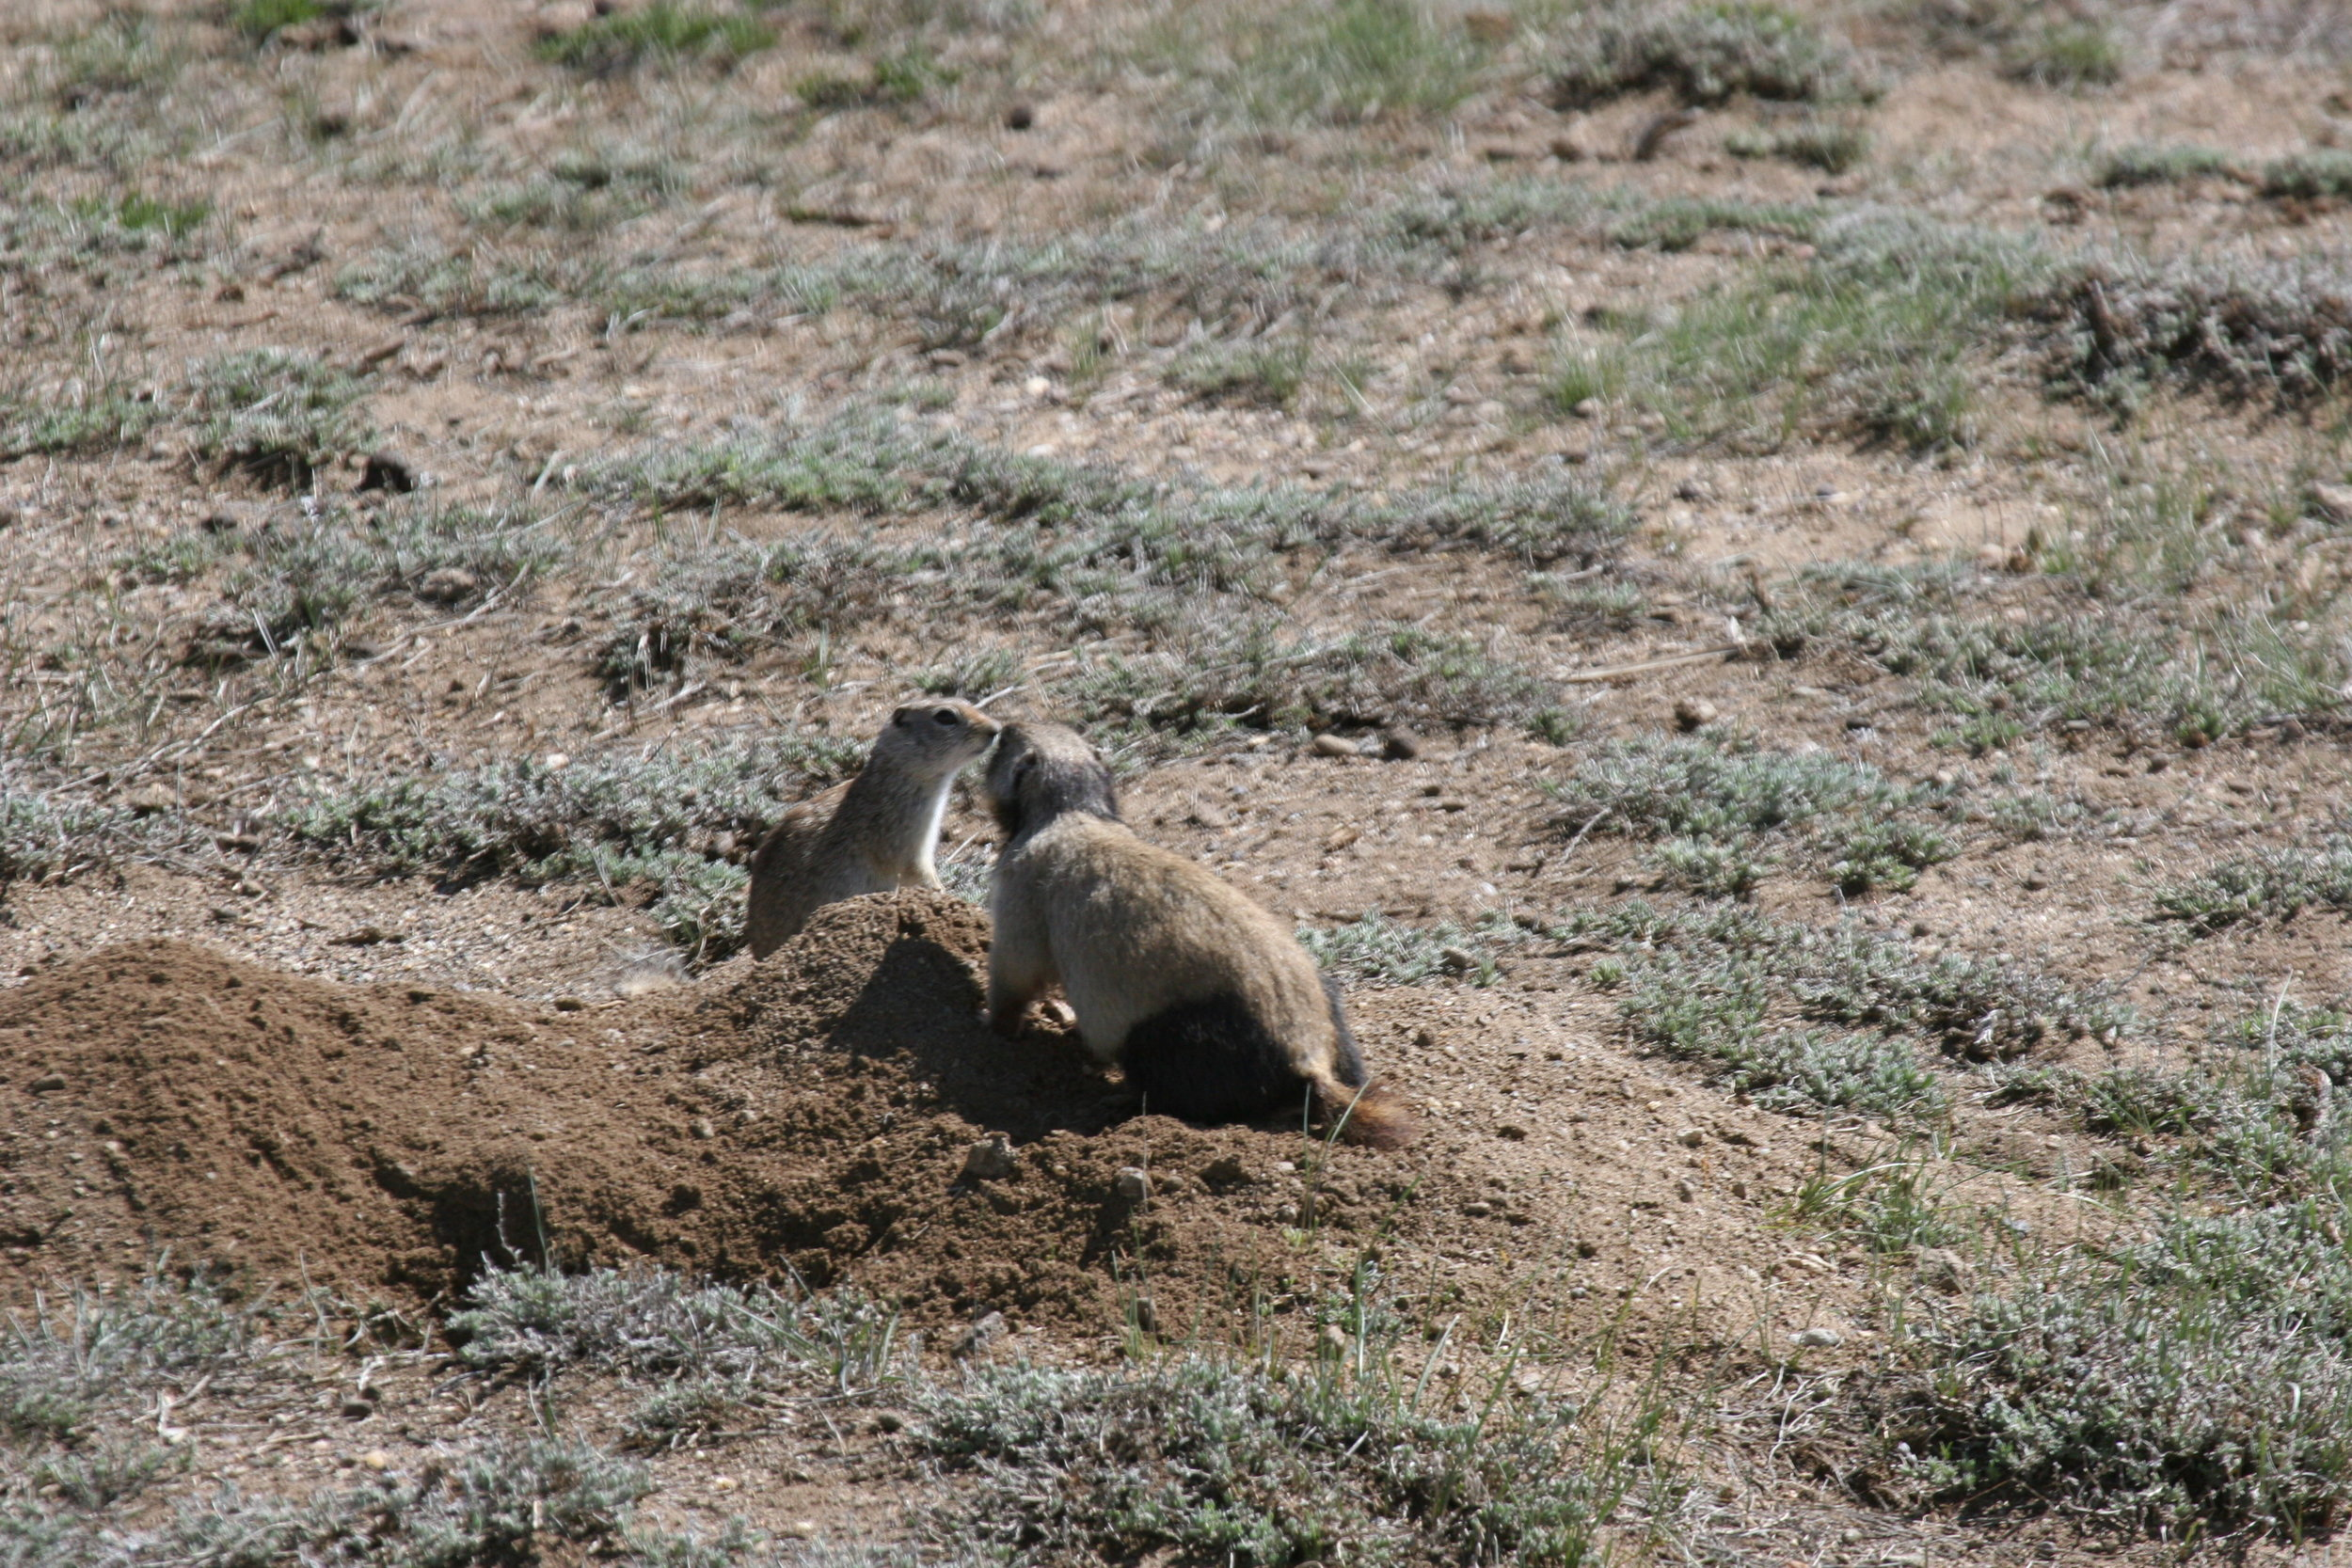 Female white-tailed praire dog RACR (Ring Around the Collar, Rear legs) faces off with a Wyoming ground squirrel.  ©John Hoogland 2011